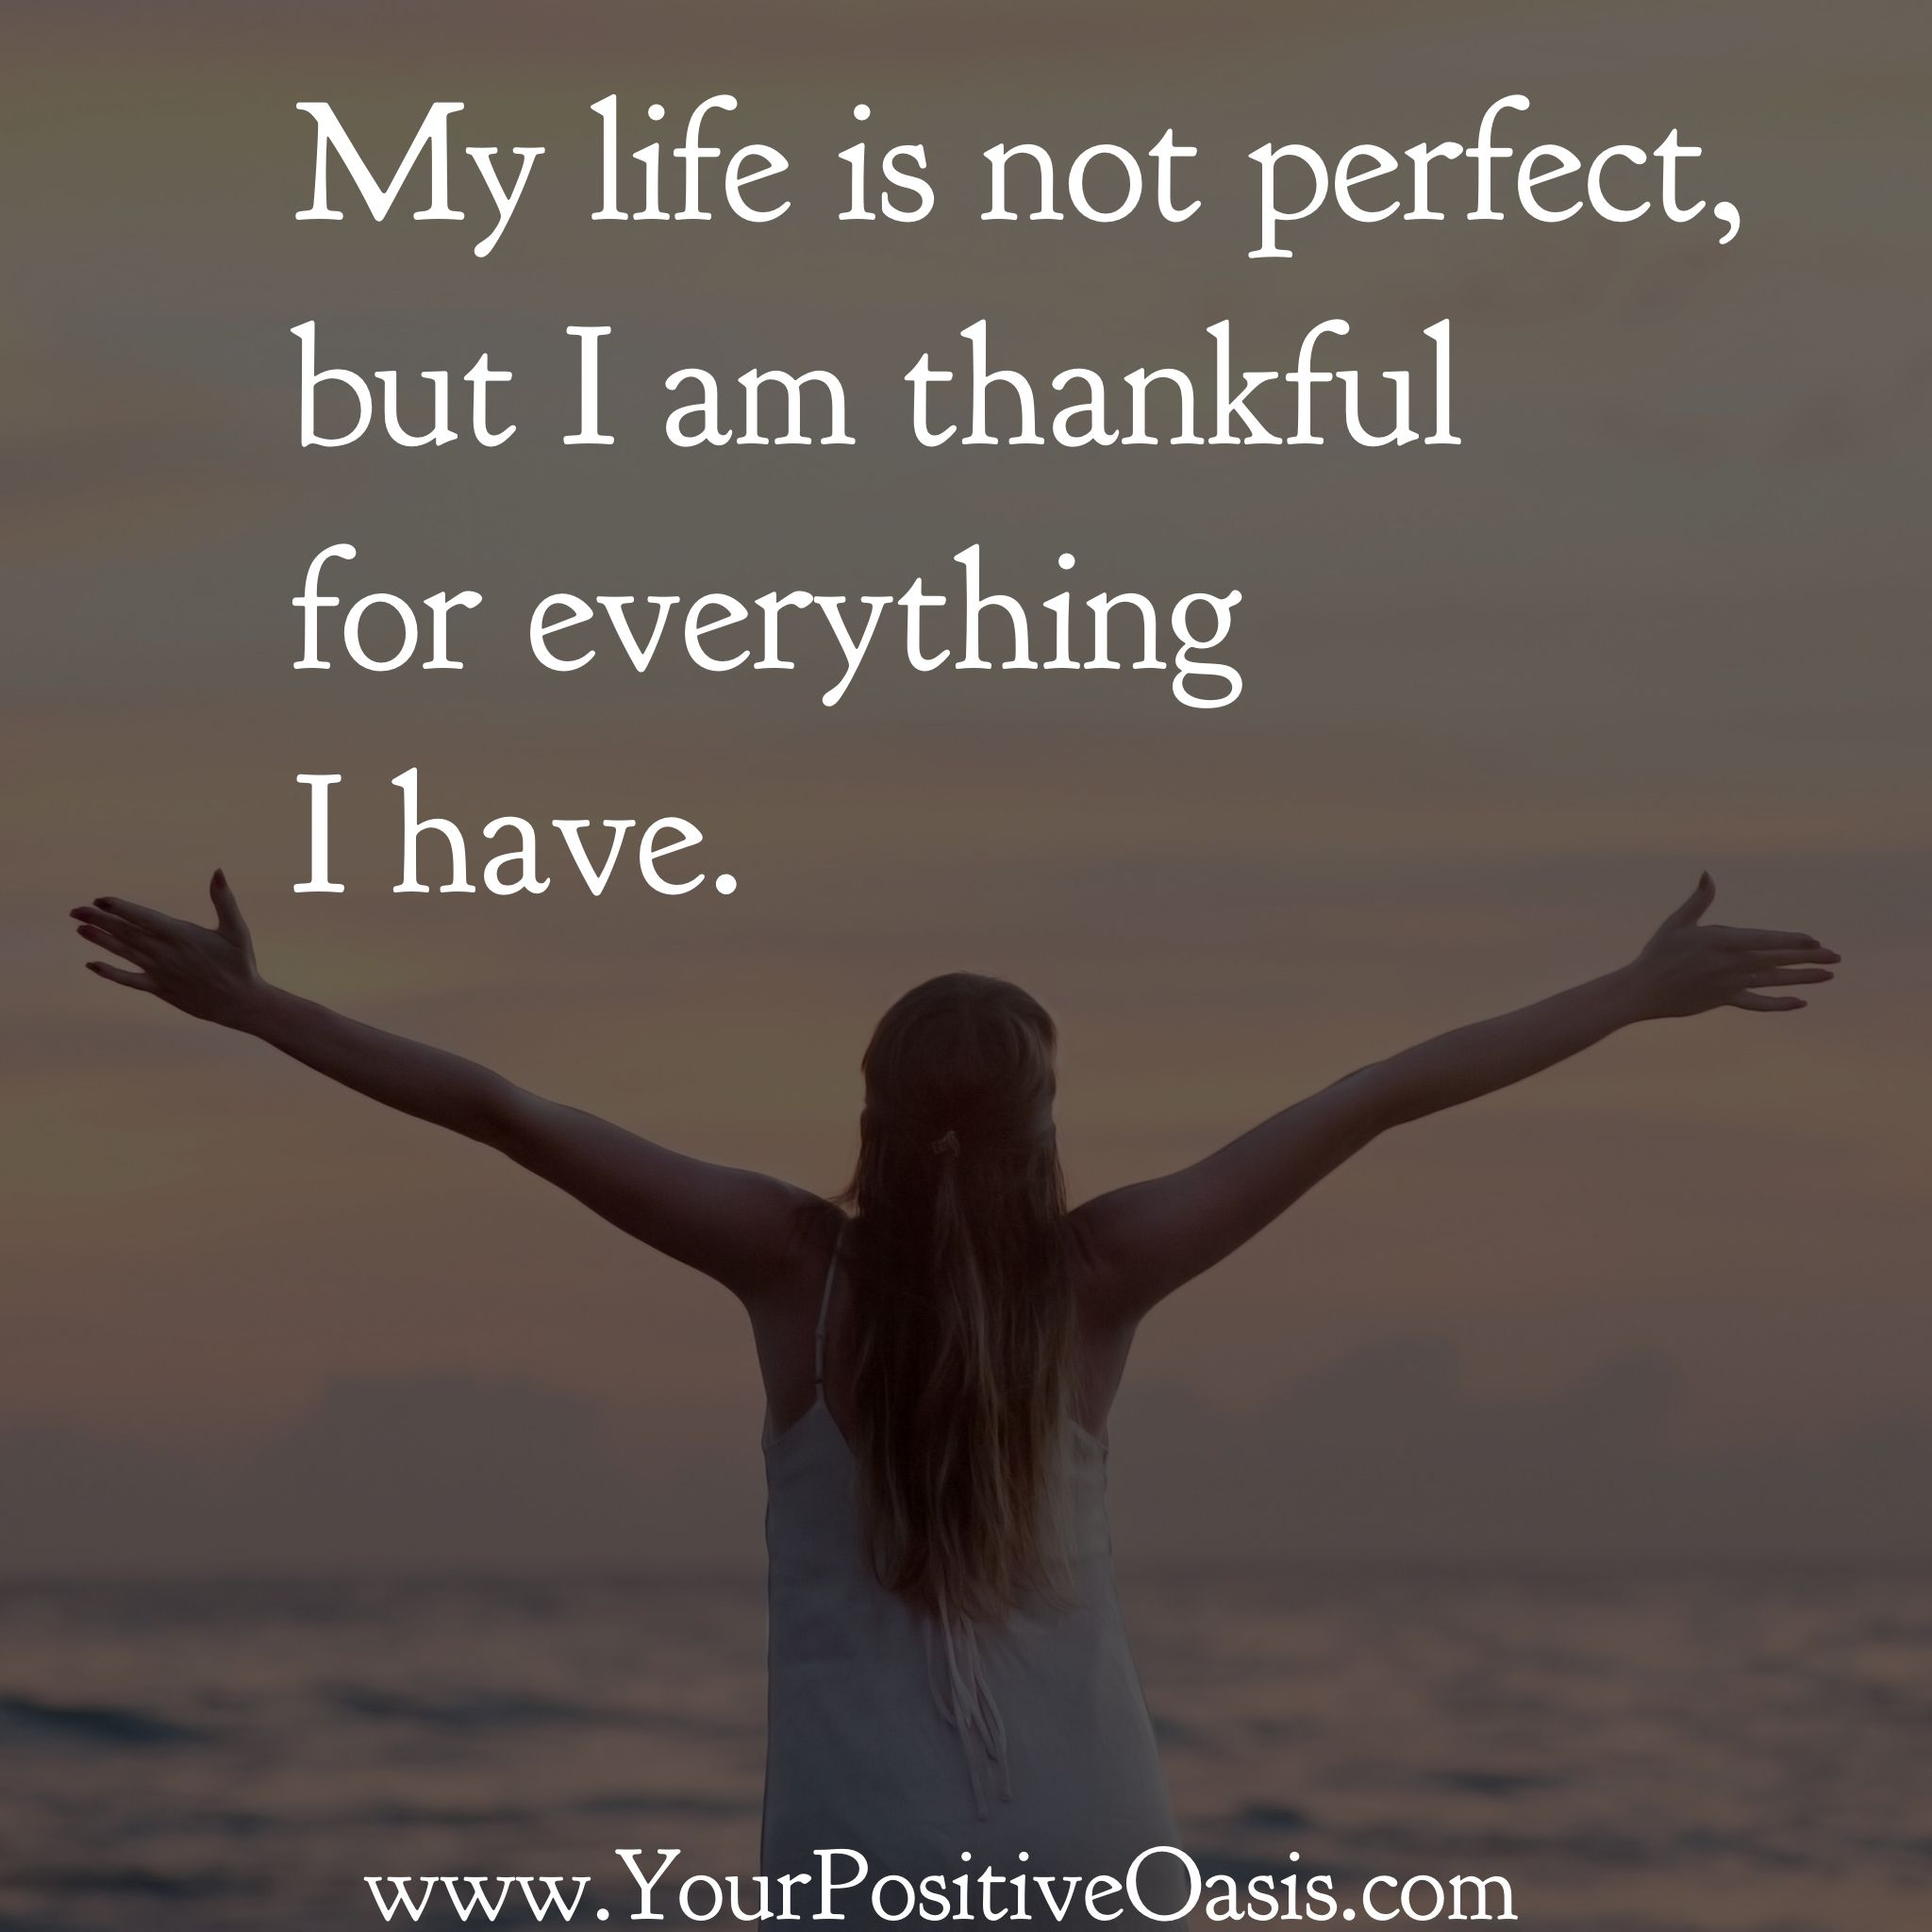 My life is not perfect but I'm thankful for everything I